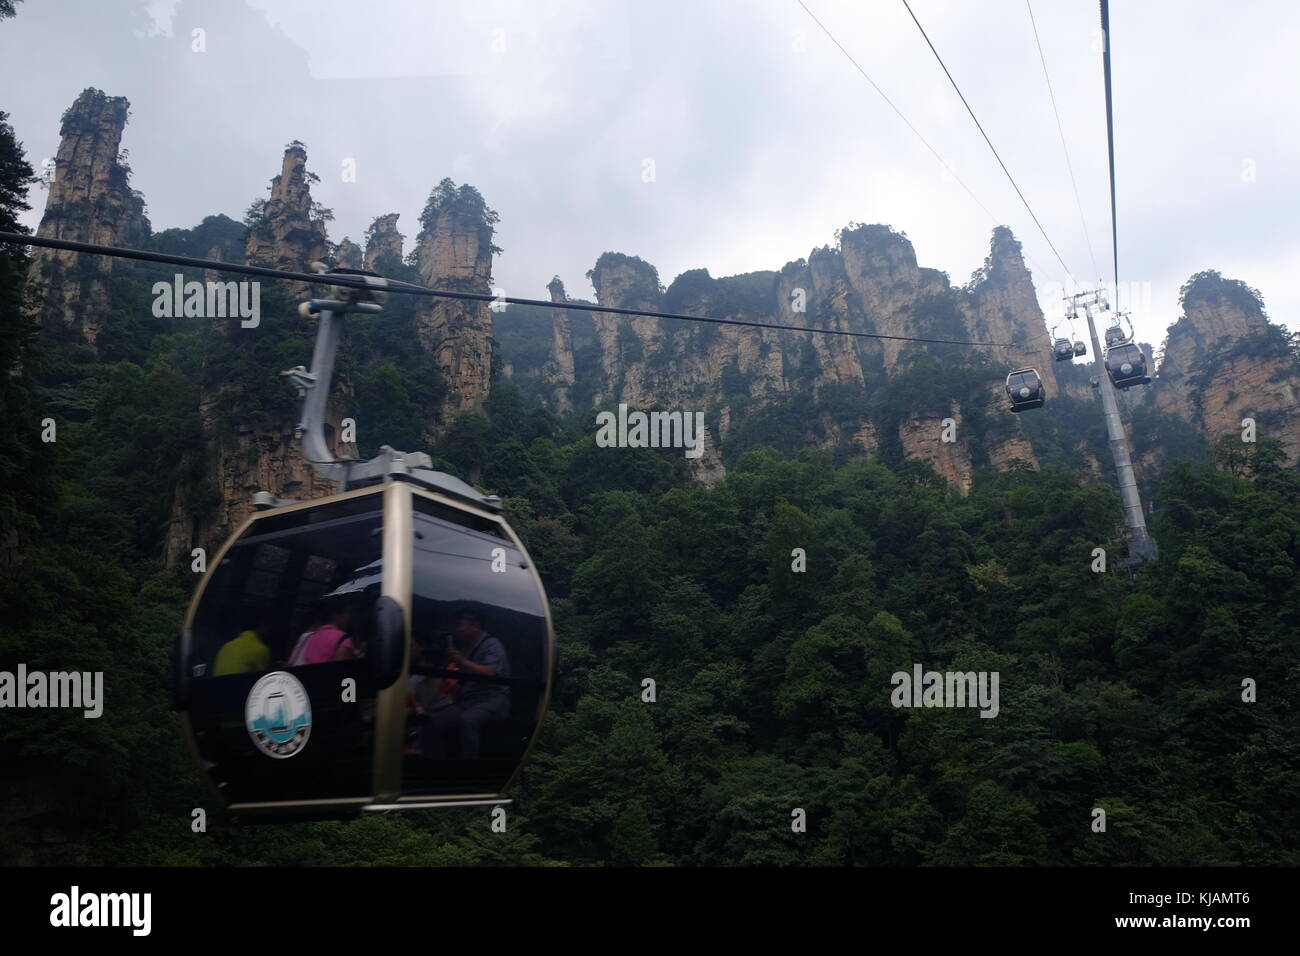 Cablecars going upwards at the Zhangjiajie National Forest Park in the Wulingyuan scenic region in China Stock Photo